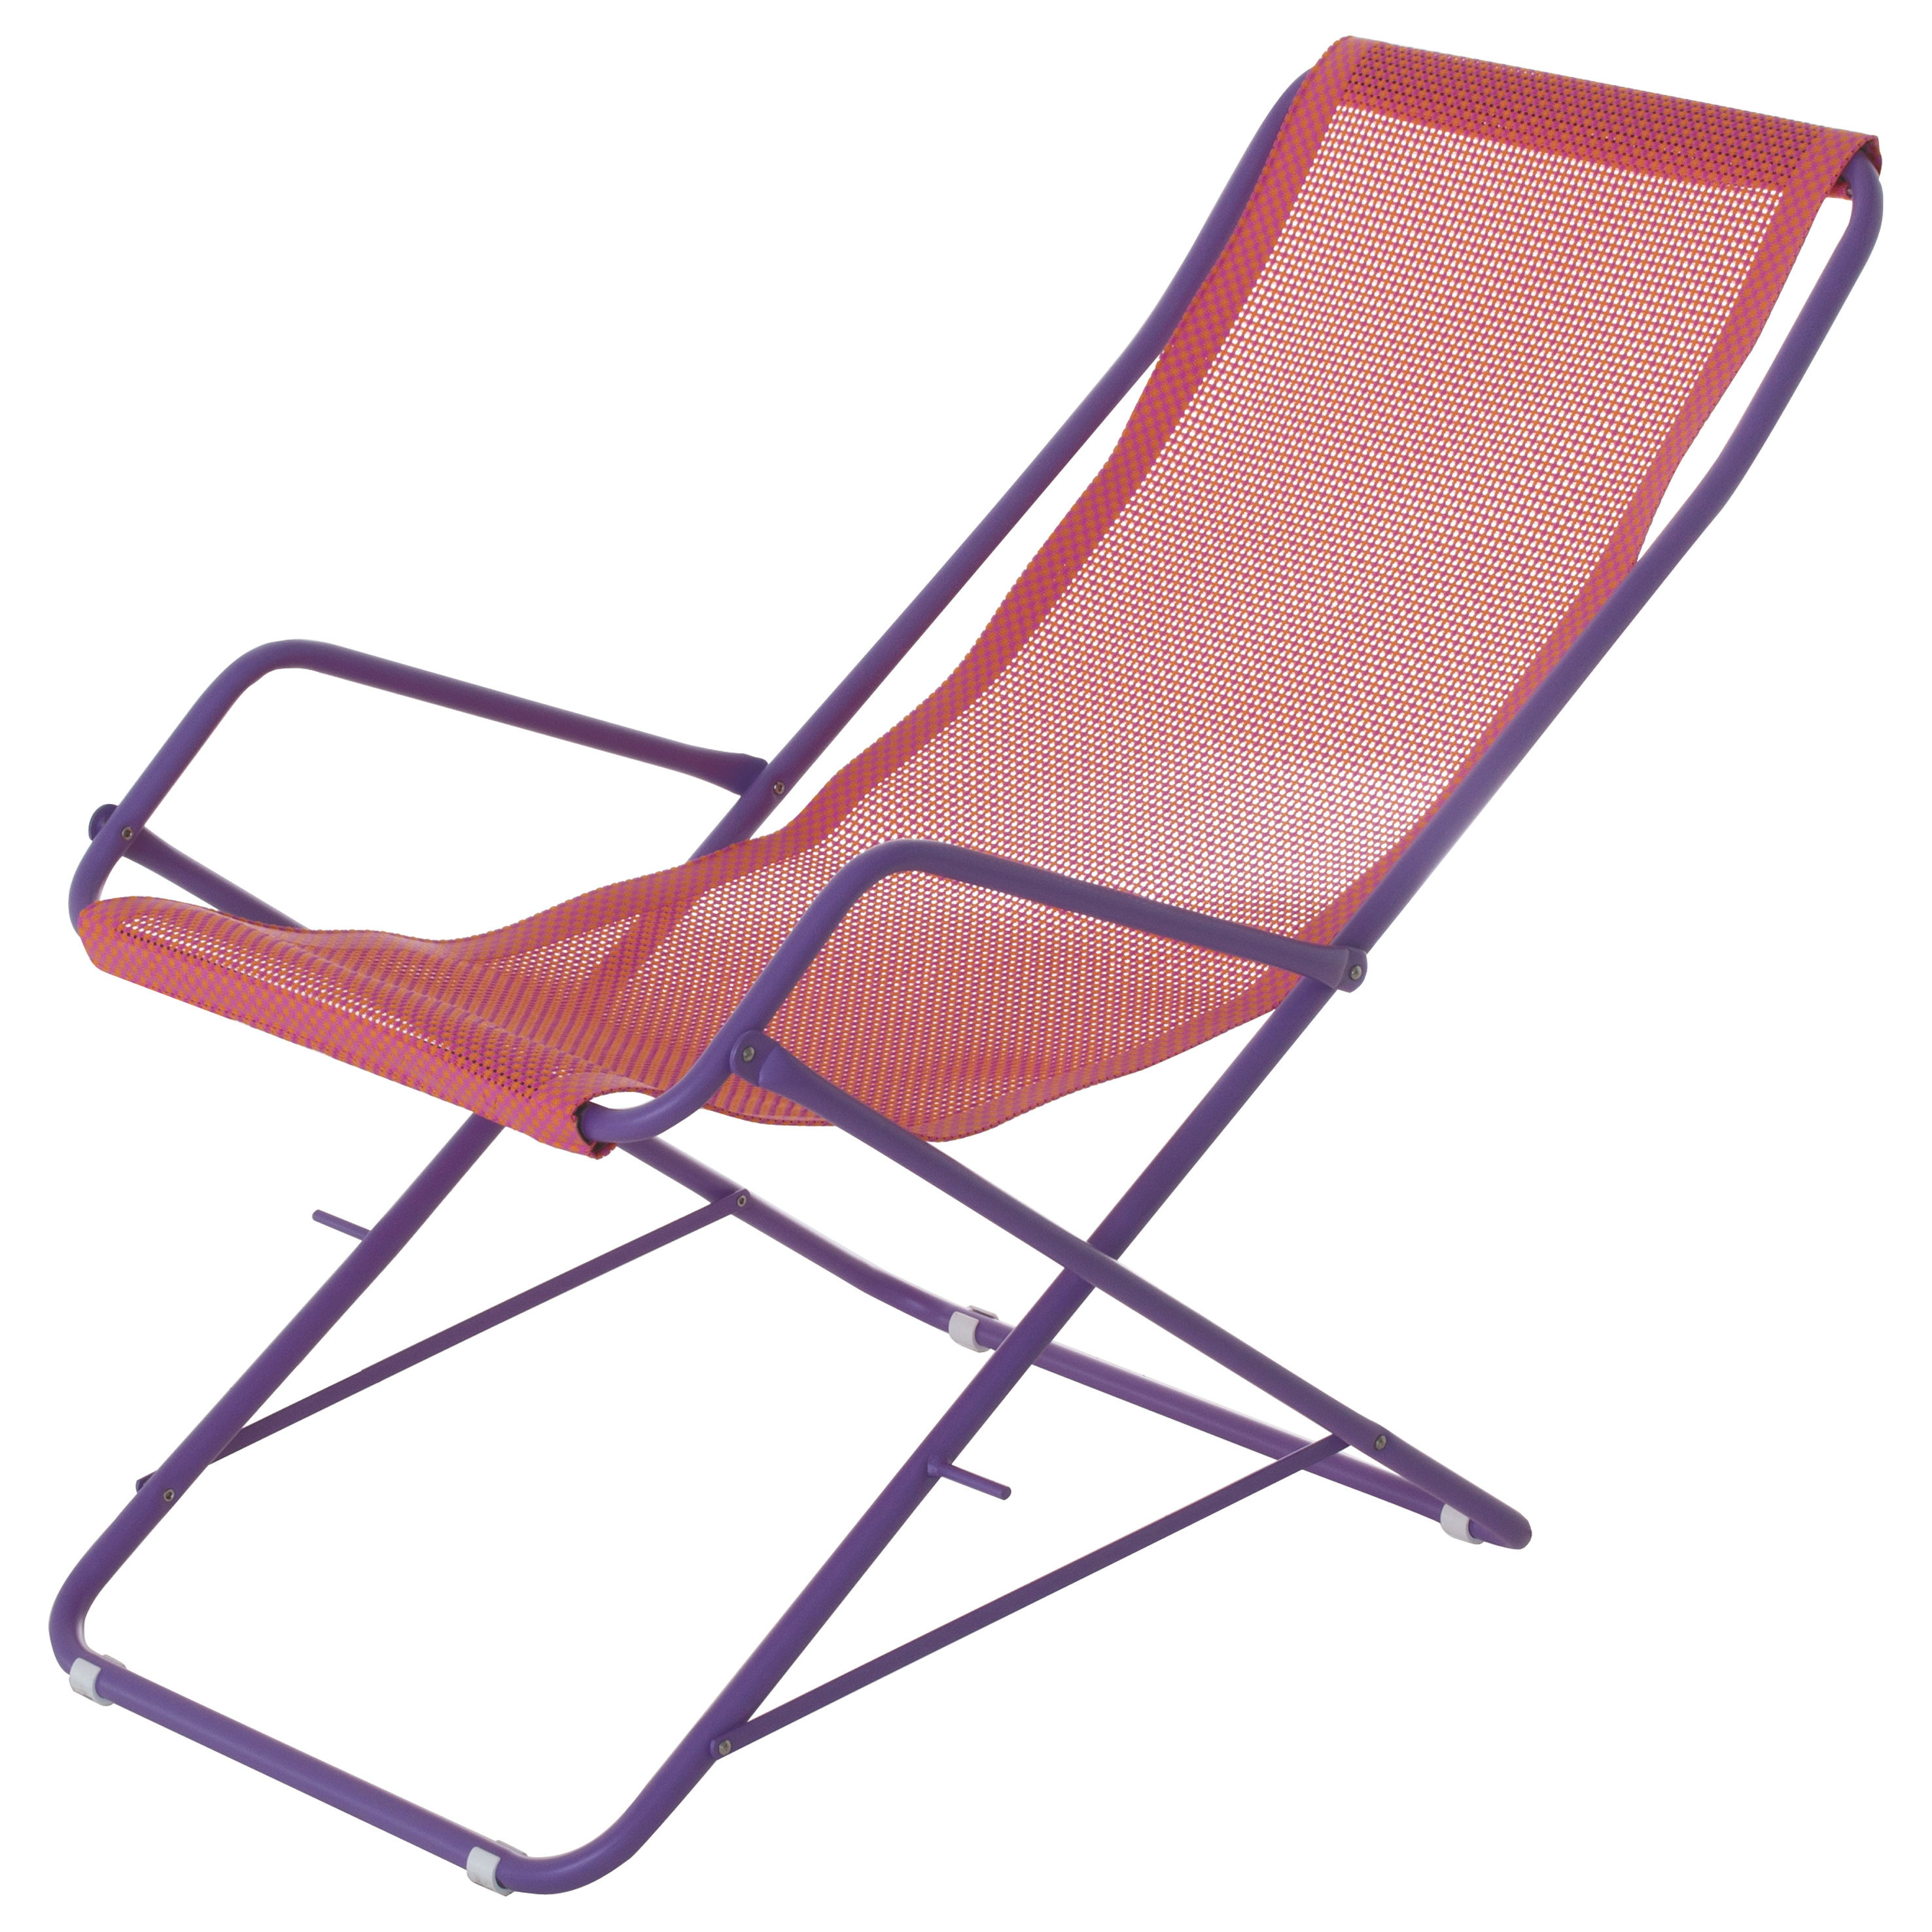 Bahama Reclining chair Foldable Pink Lilac structure by Emu